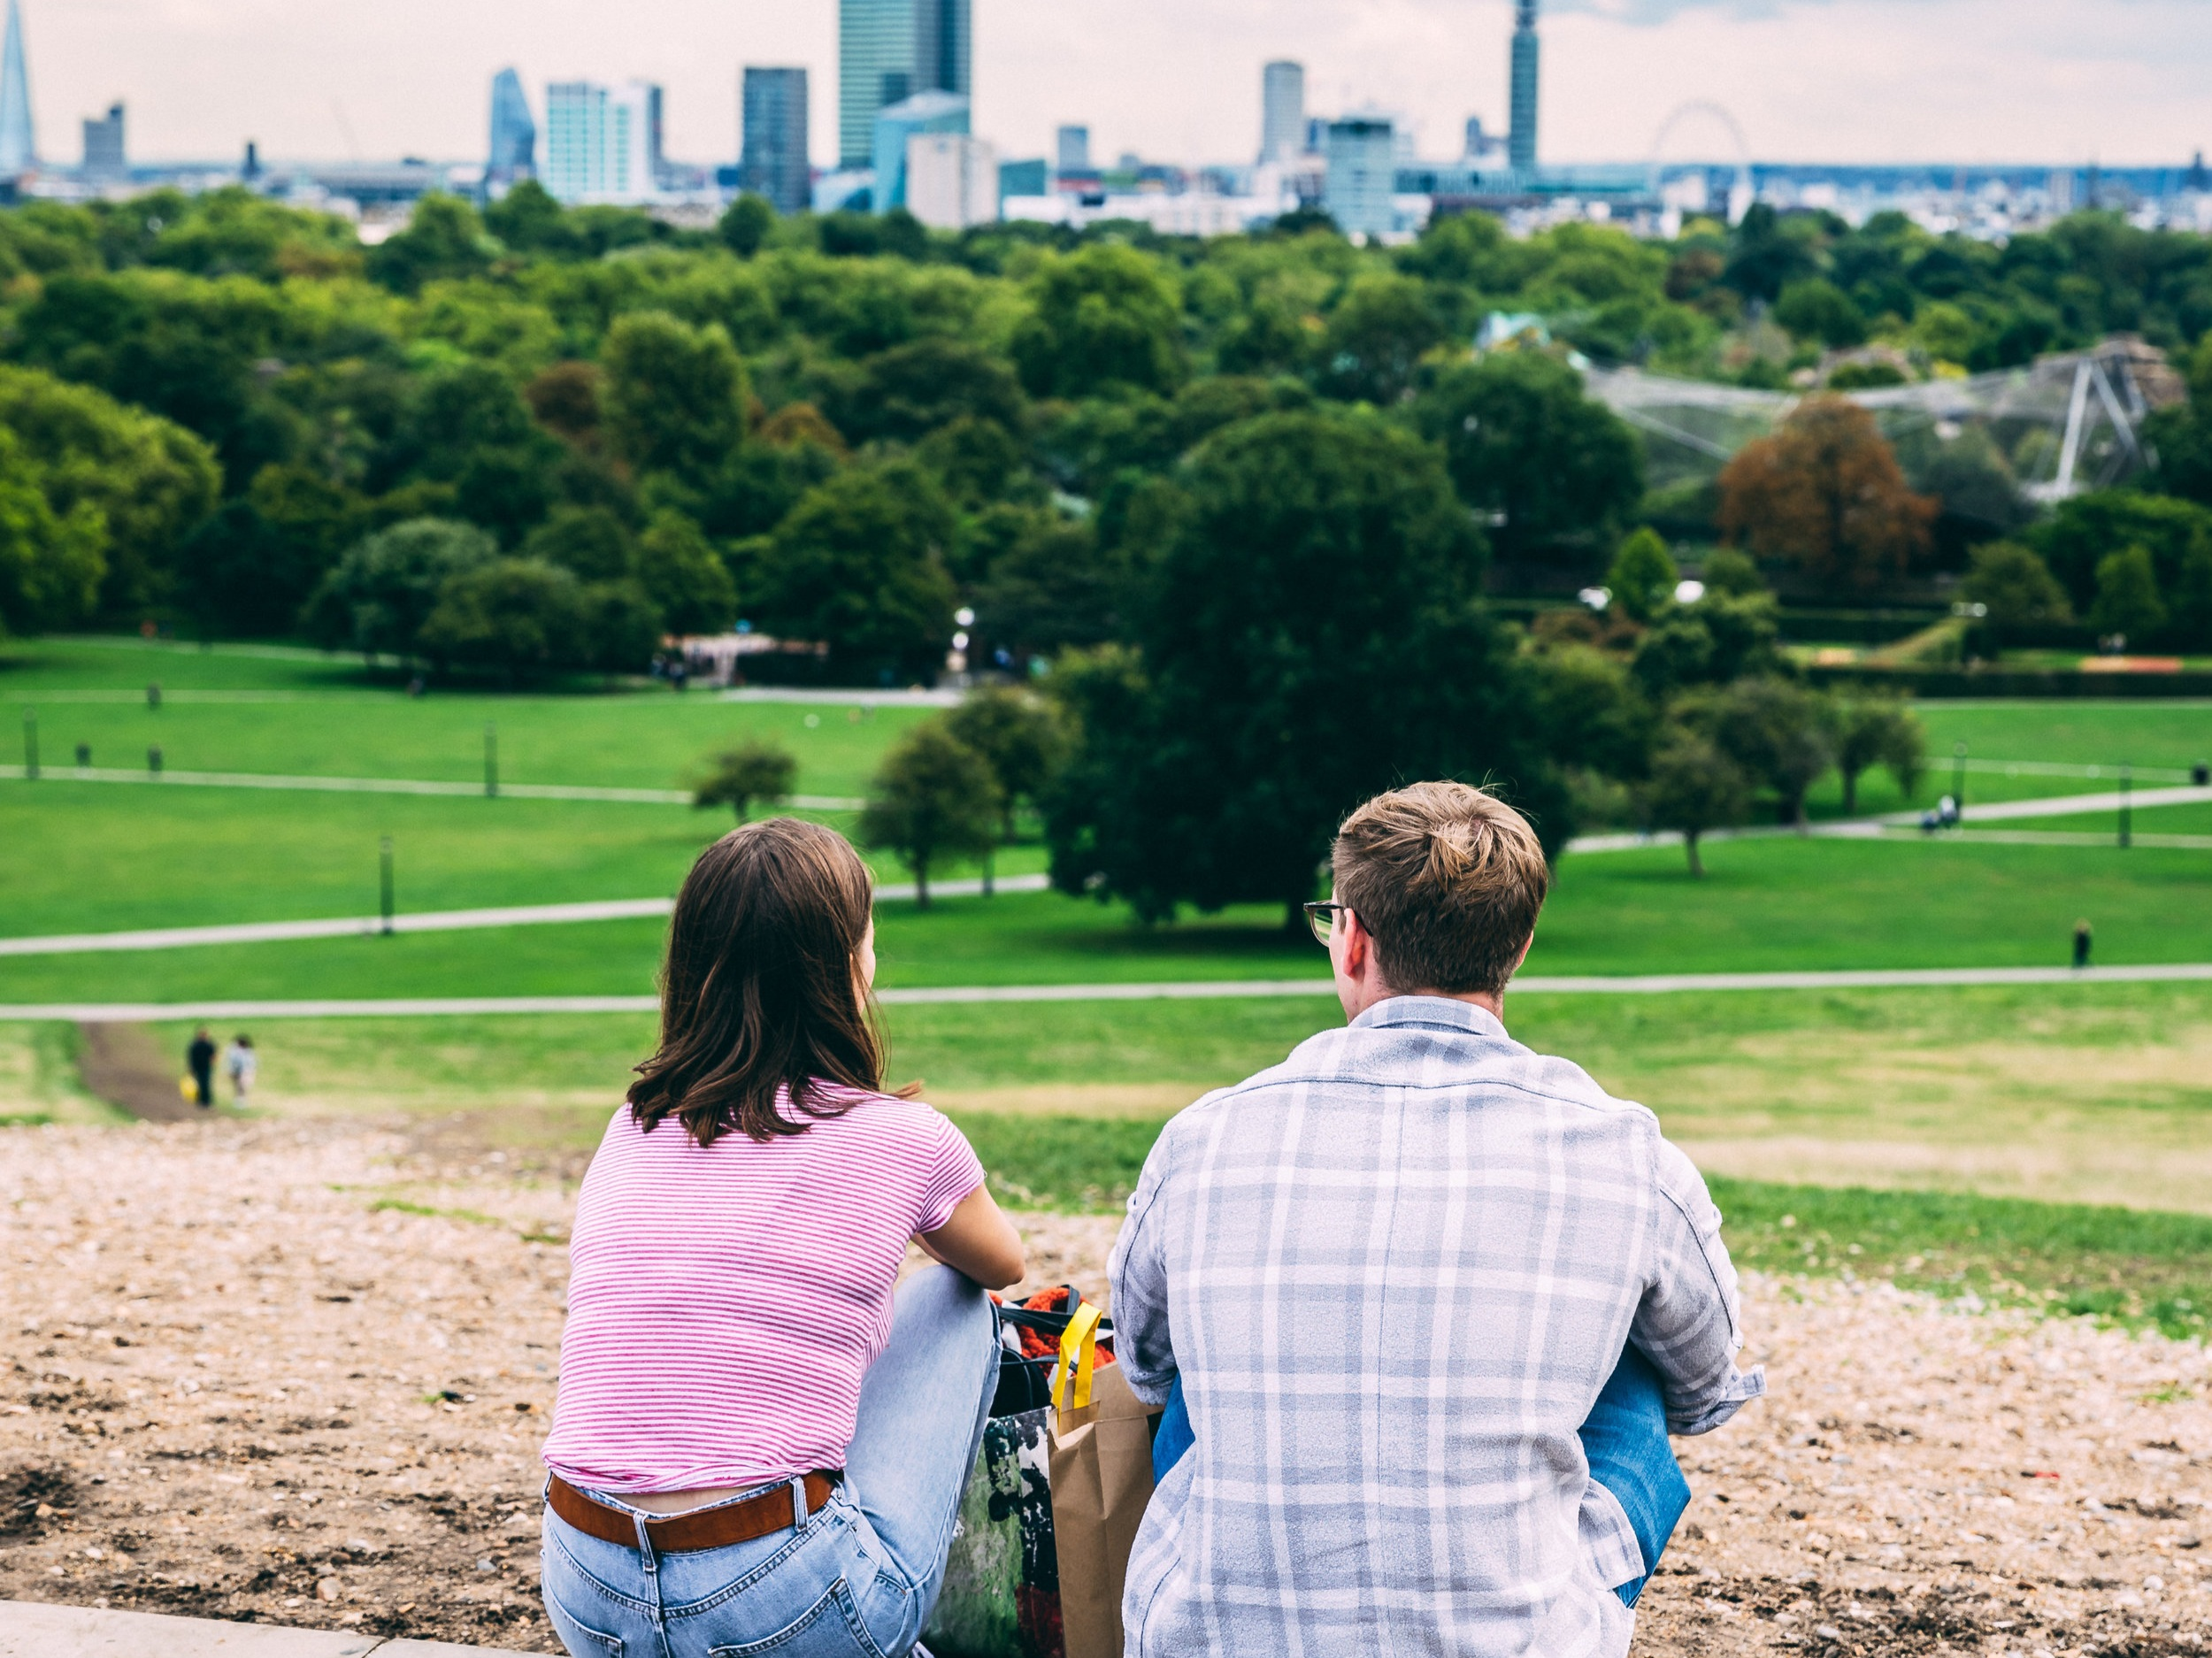 Other towns must have something like Primrose Hill…